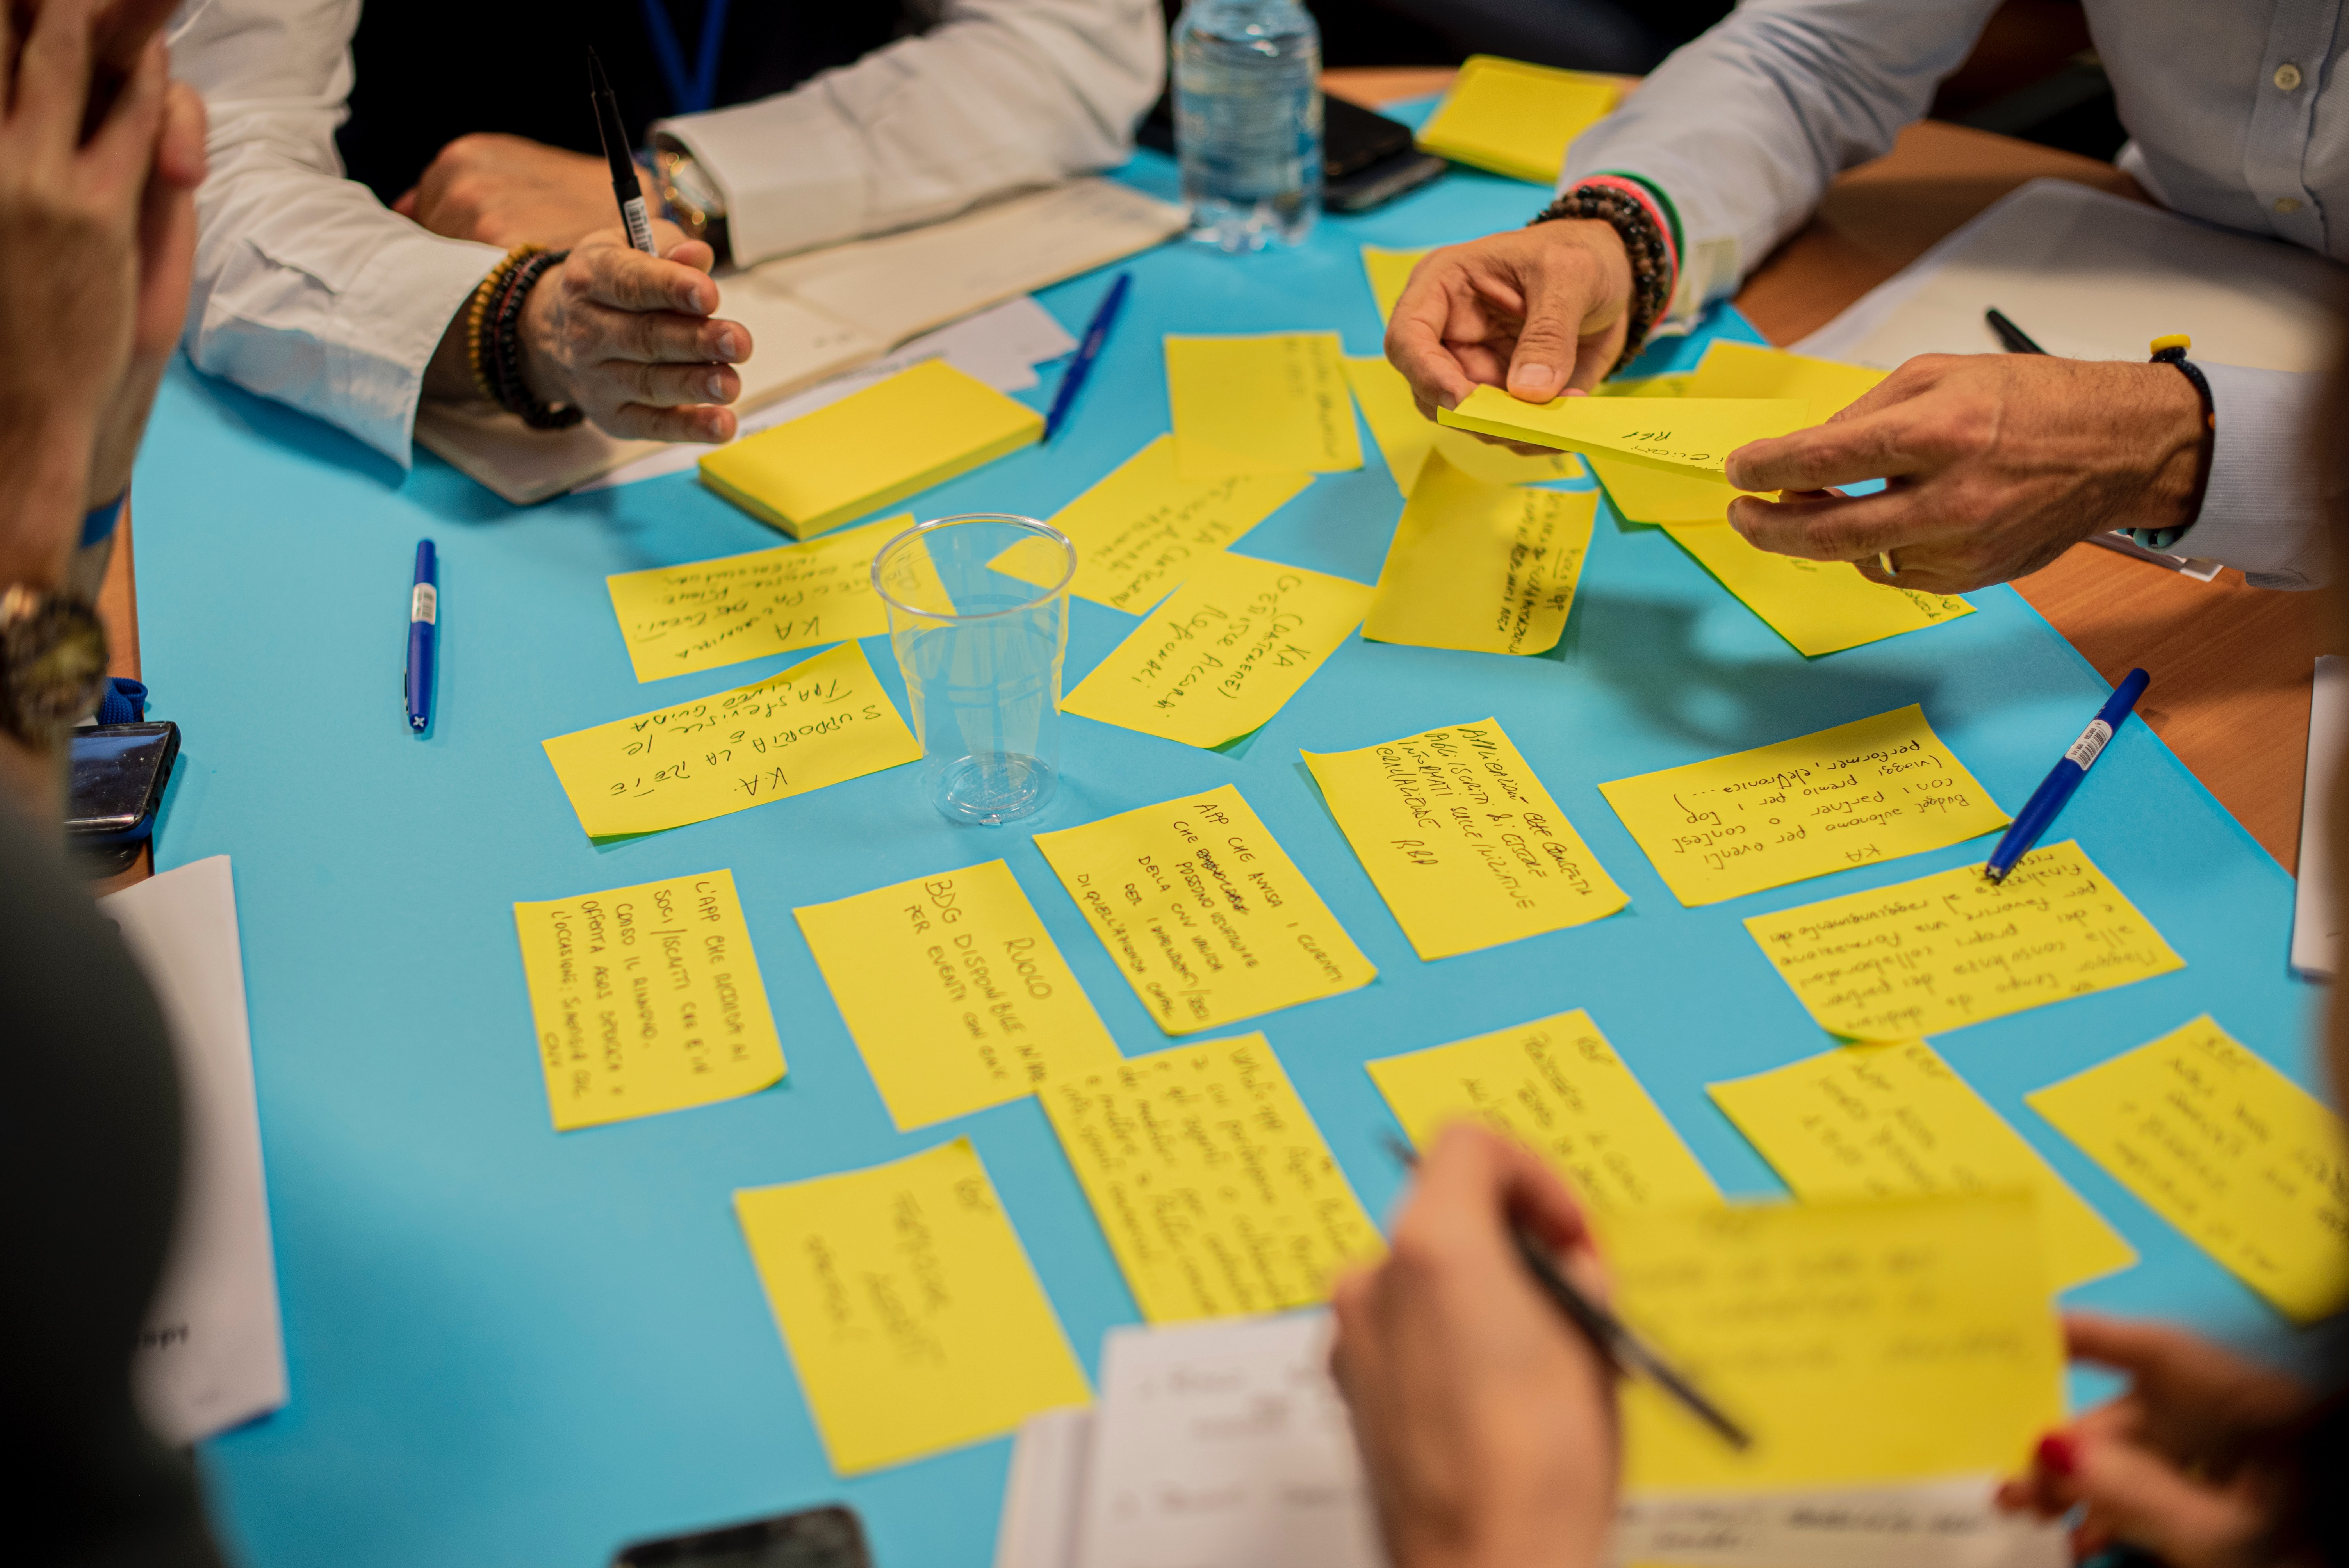 People writing on sticky notes at a table